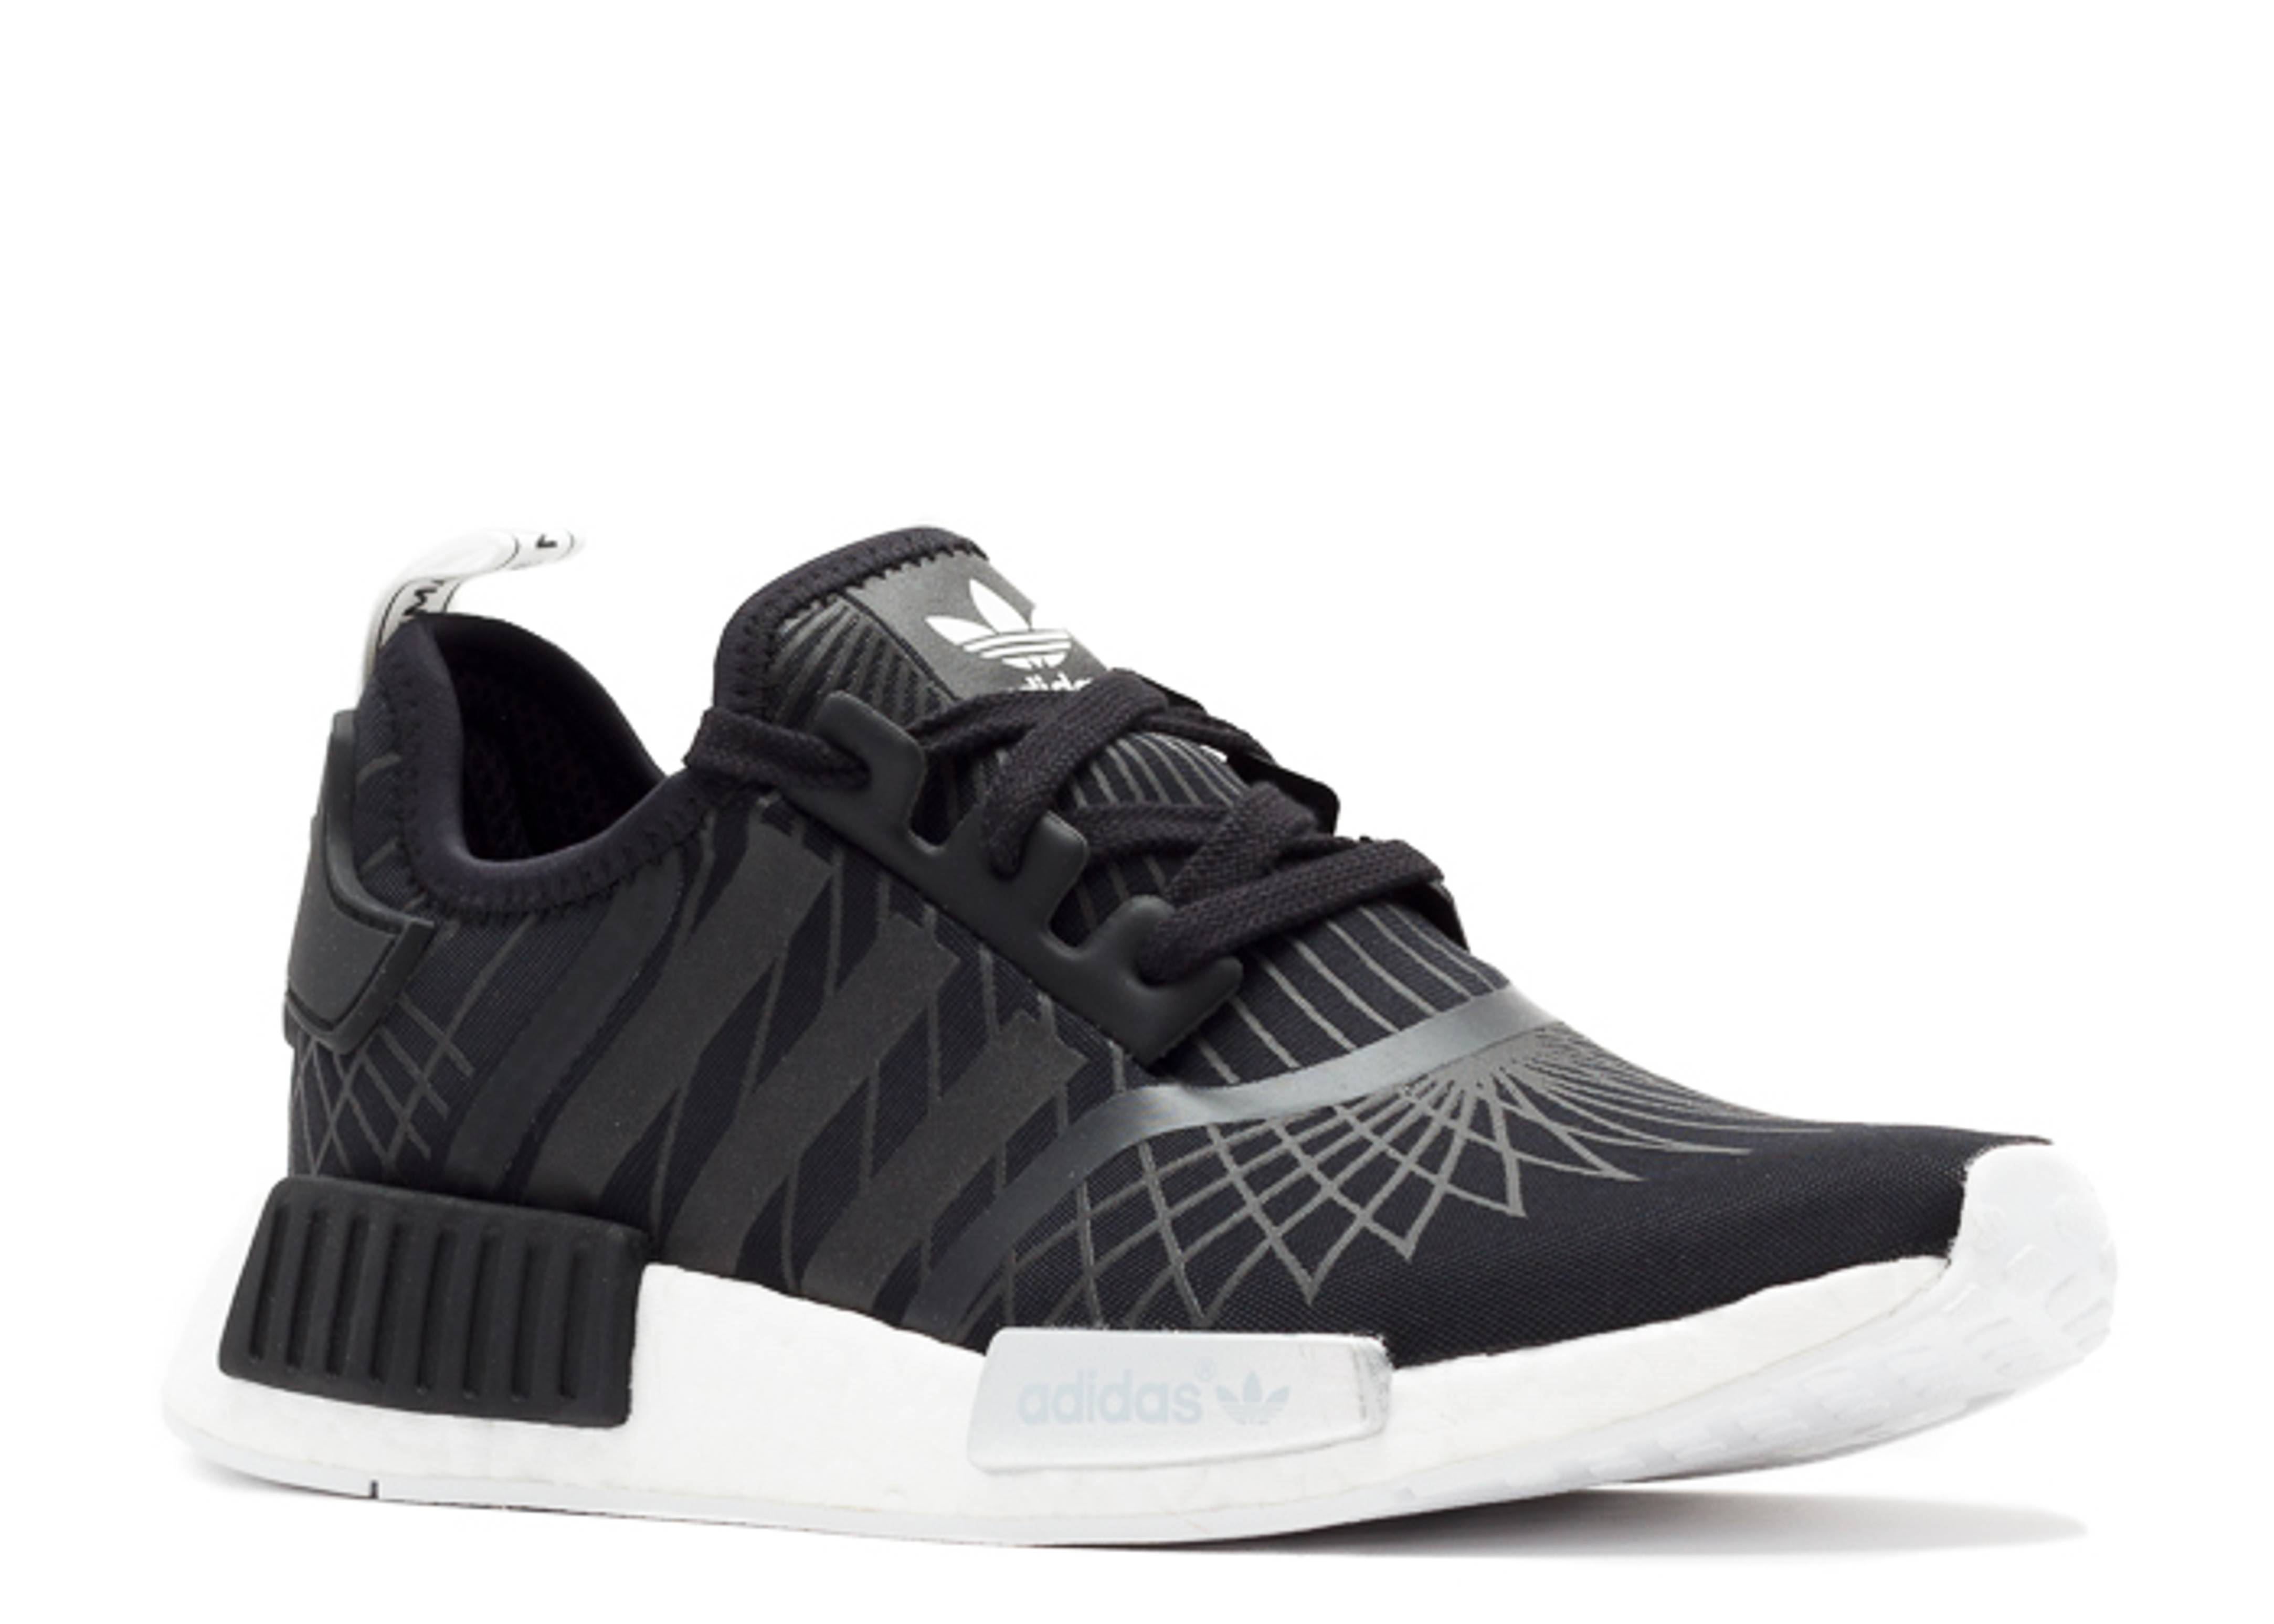 cheap for discount 3d0f6 7c00c Nmd Runner W - Adidas - s79386 - black/white-silver | Flight ...